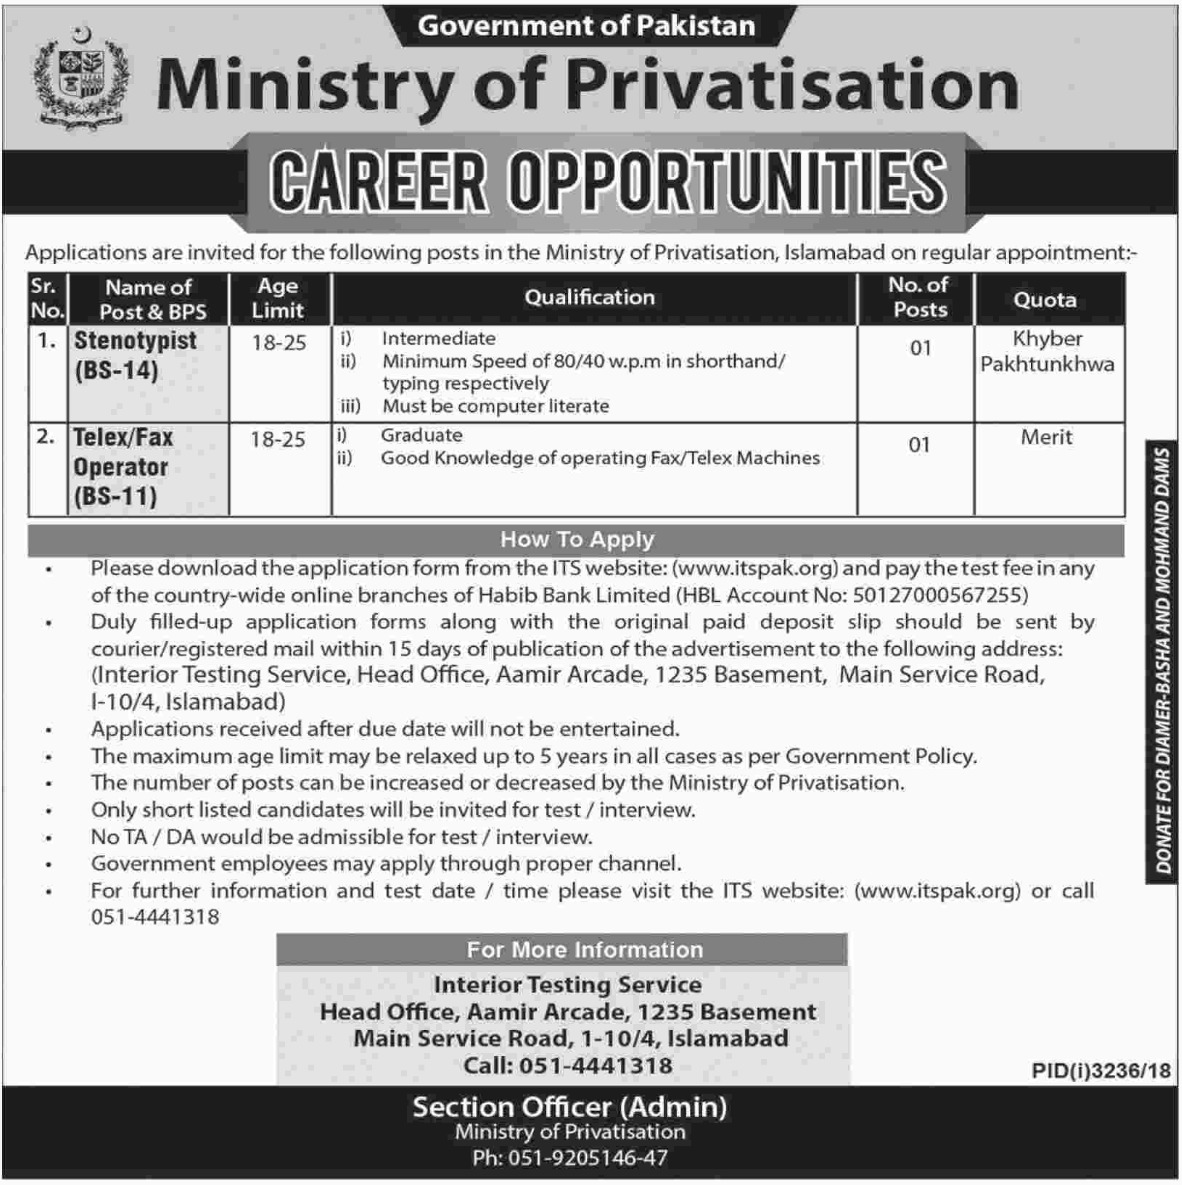 Ministry of Privatisation Jobs 2019 Government of Pakistan